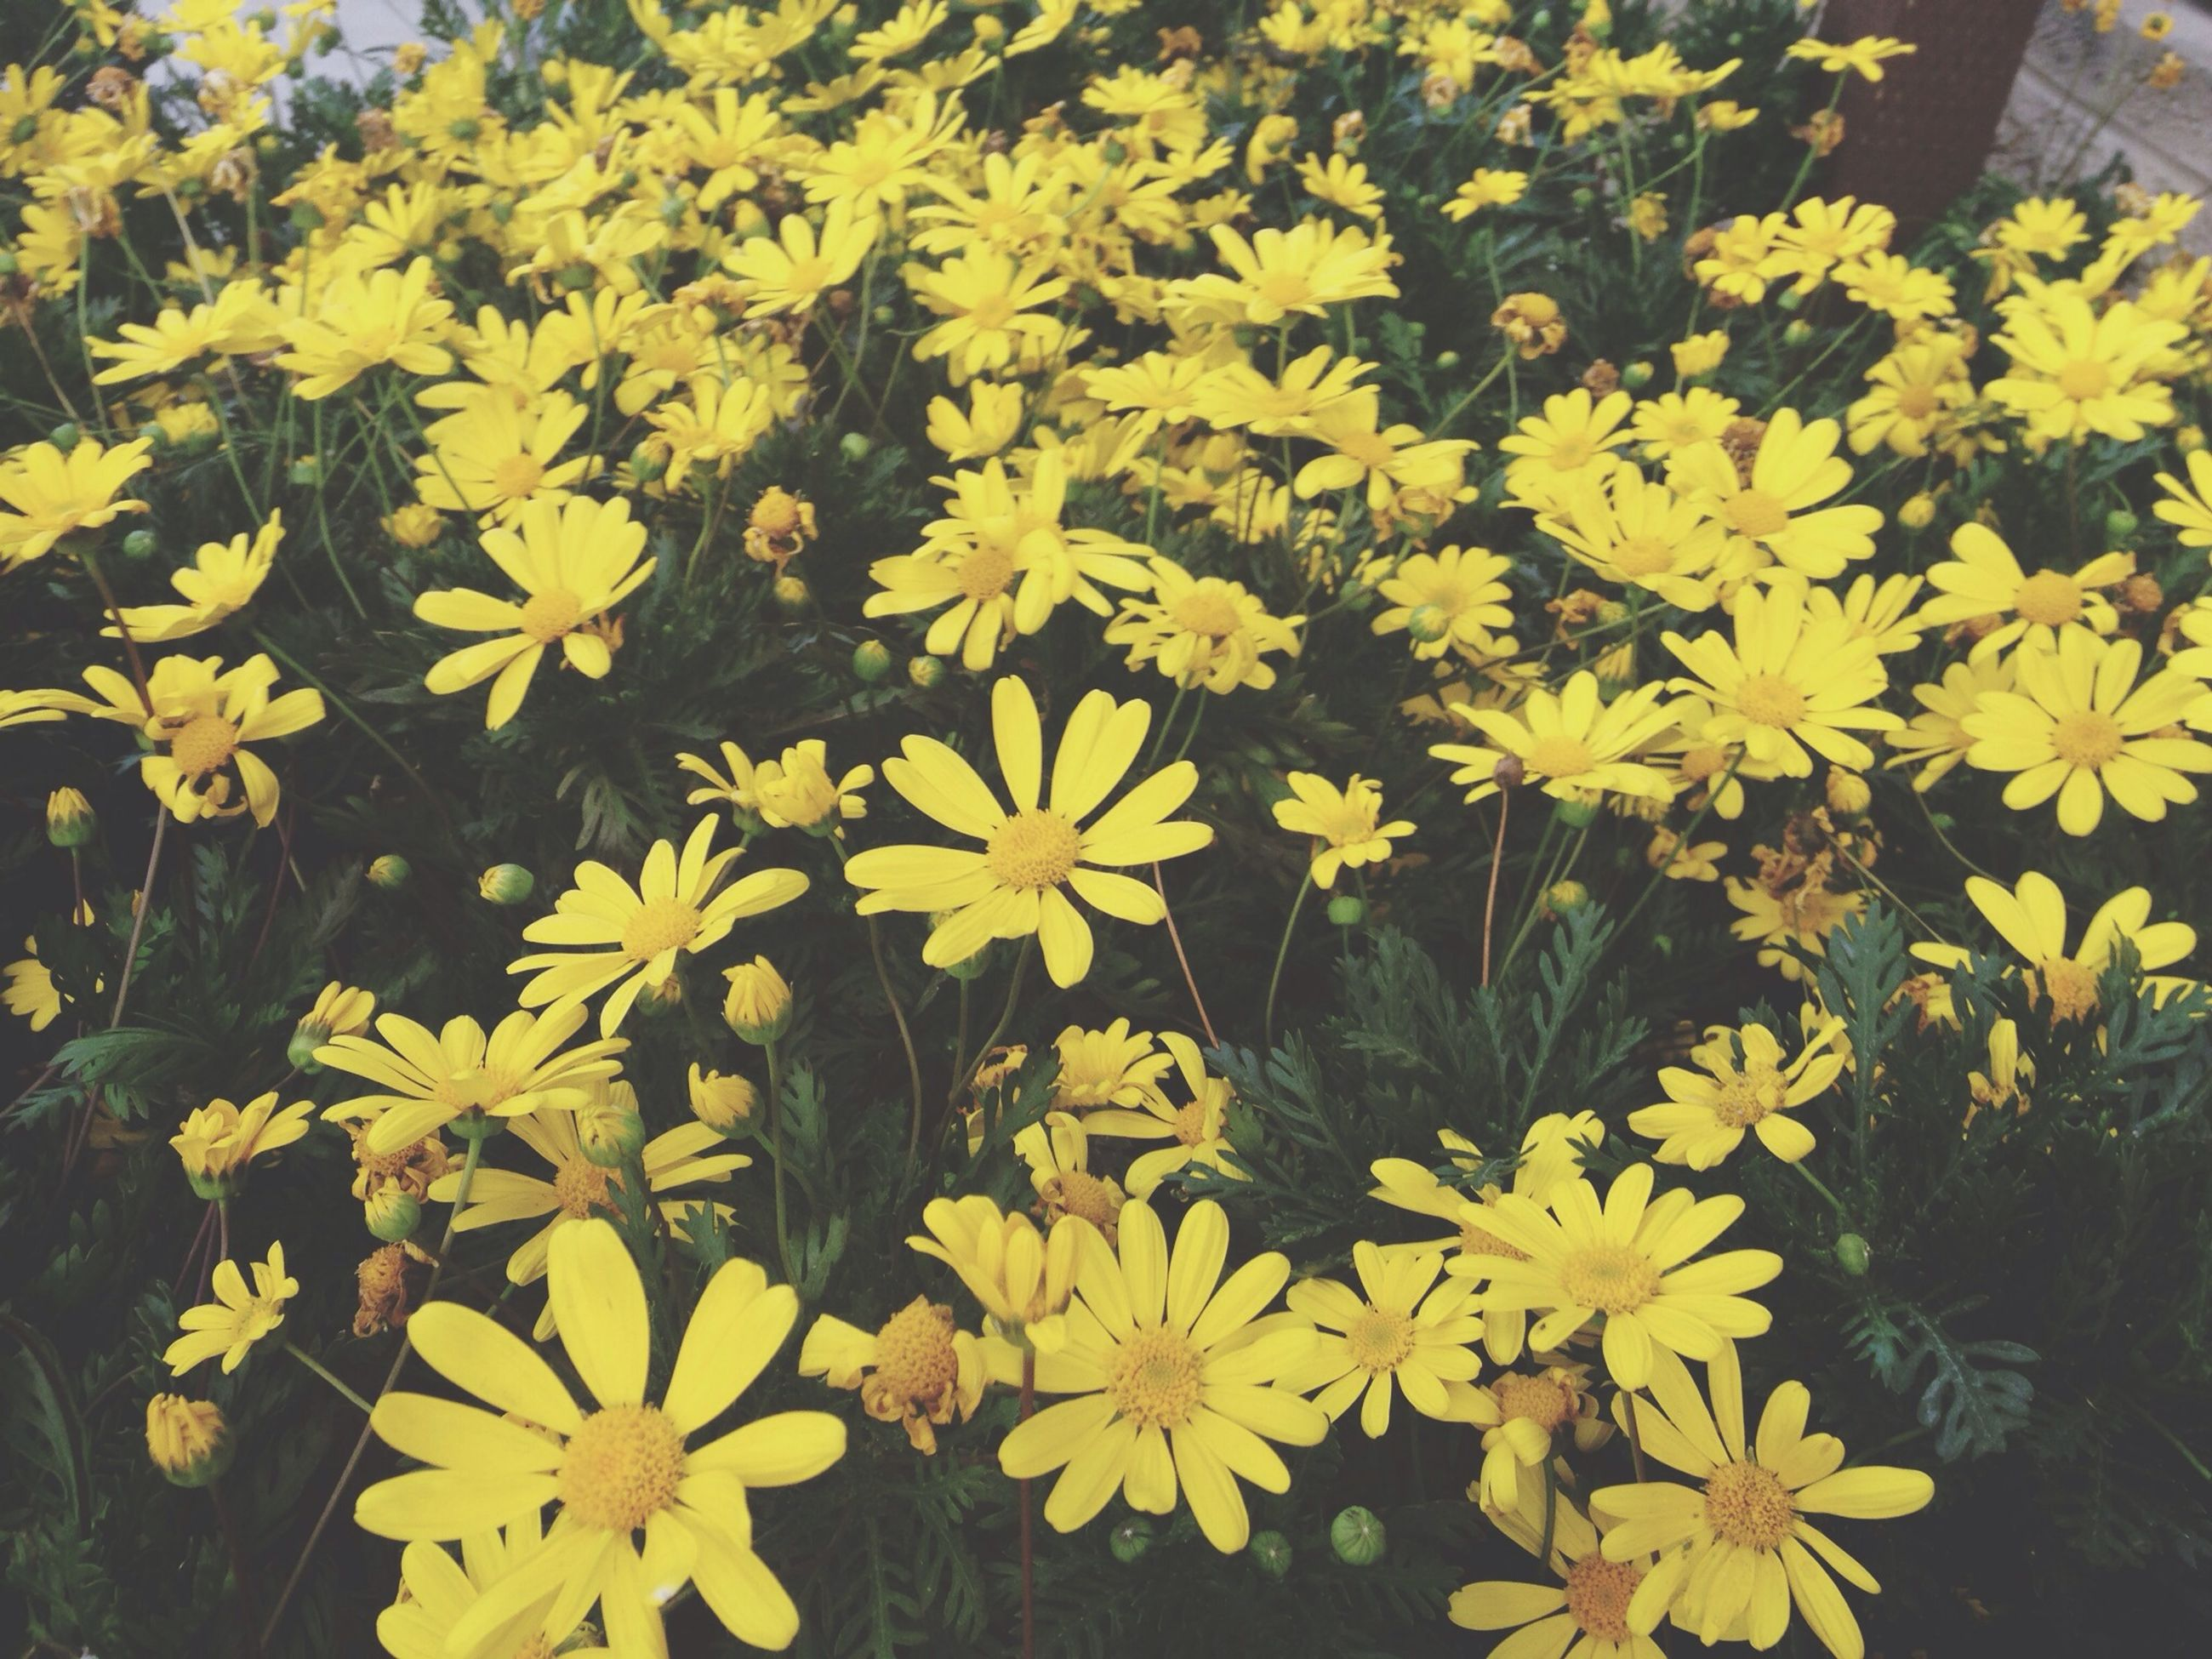 flower, yellow, freshness, growth, petal, fragility, beauty in nature, nature, high angle view, plant, blooming, flower head, abundance, in bloom, day, outdoors, no people, park - man made space, field, leaf